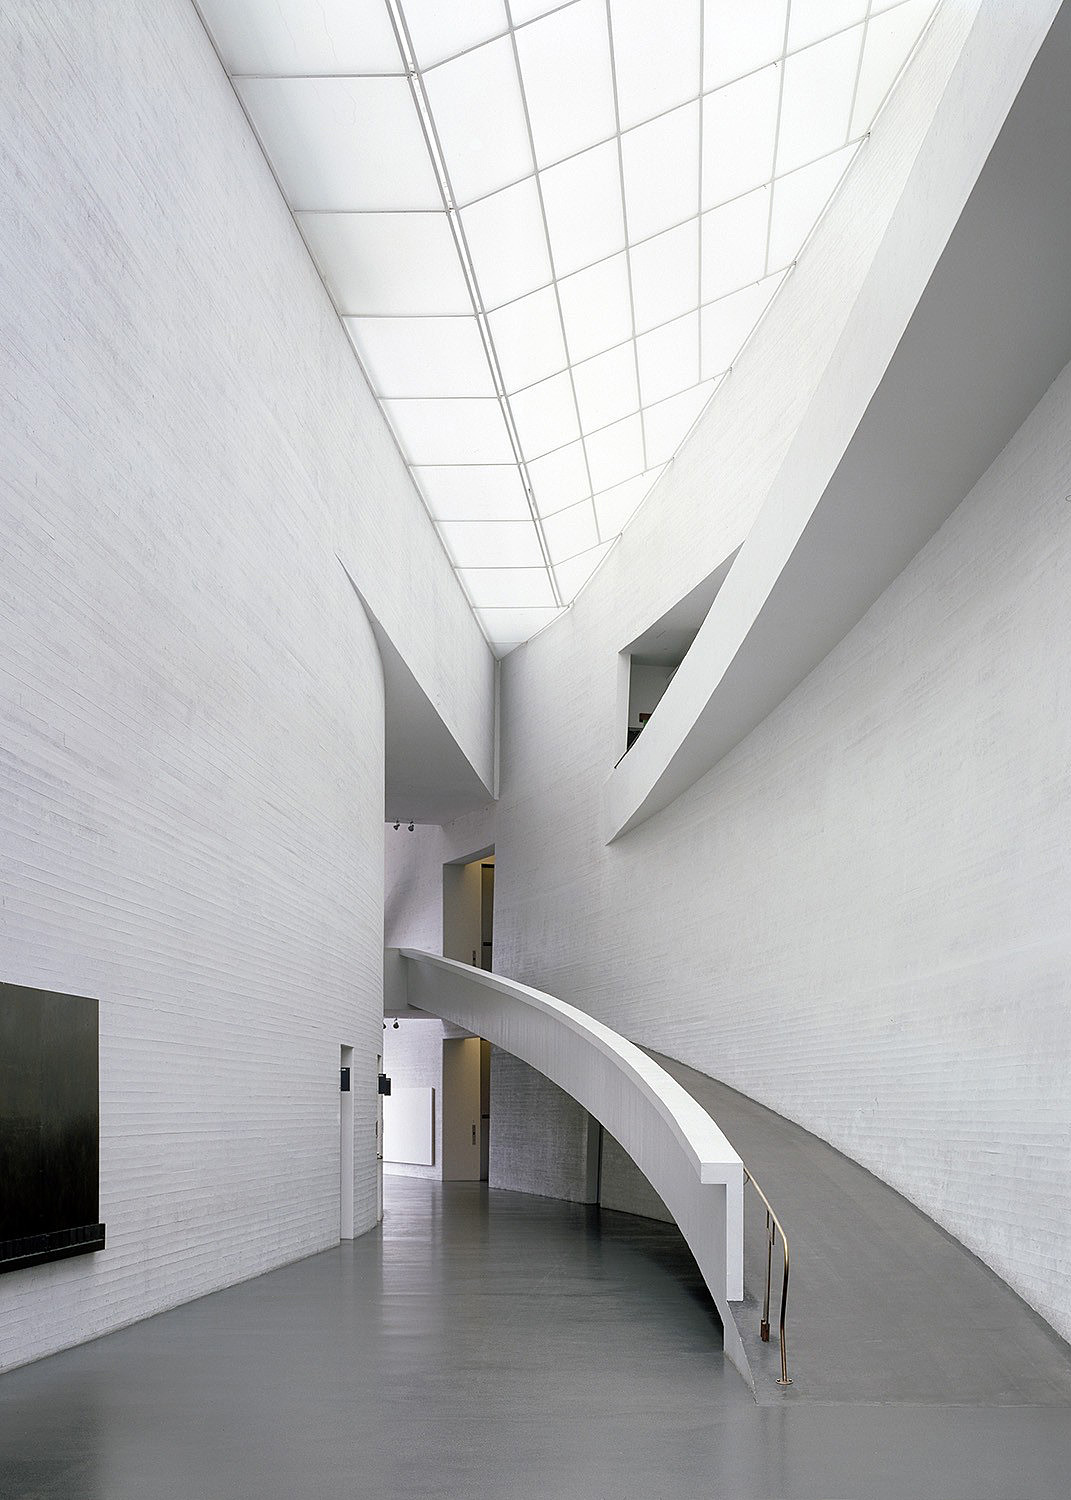 Kiasma Museum Of Contemporary Art, Helsinki, 1998. © Steven Holl. Courtesy Steven Holl Architects. Photograph: ©  Paul Warchol